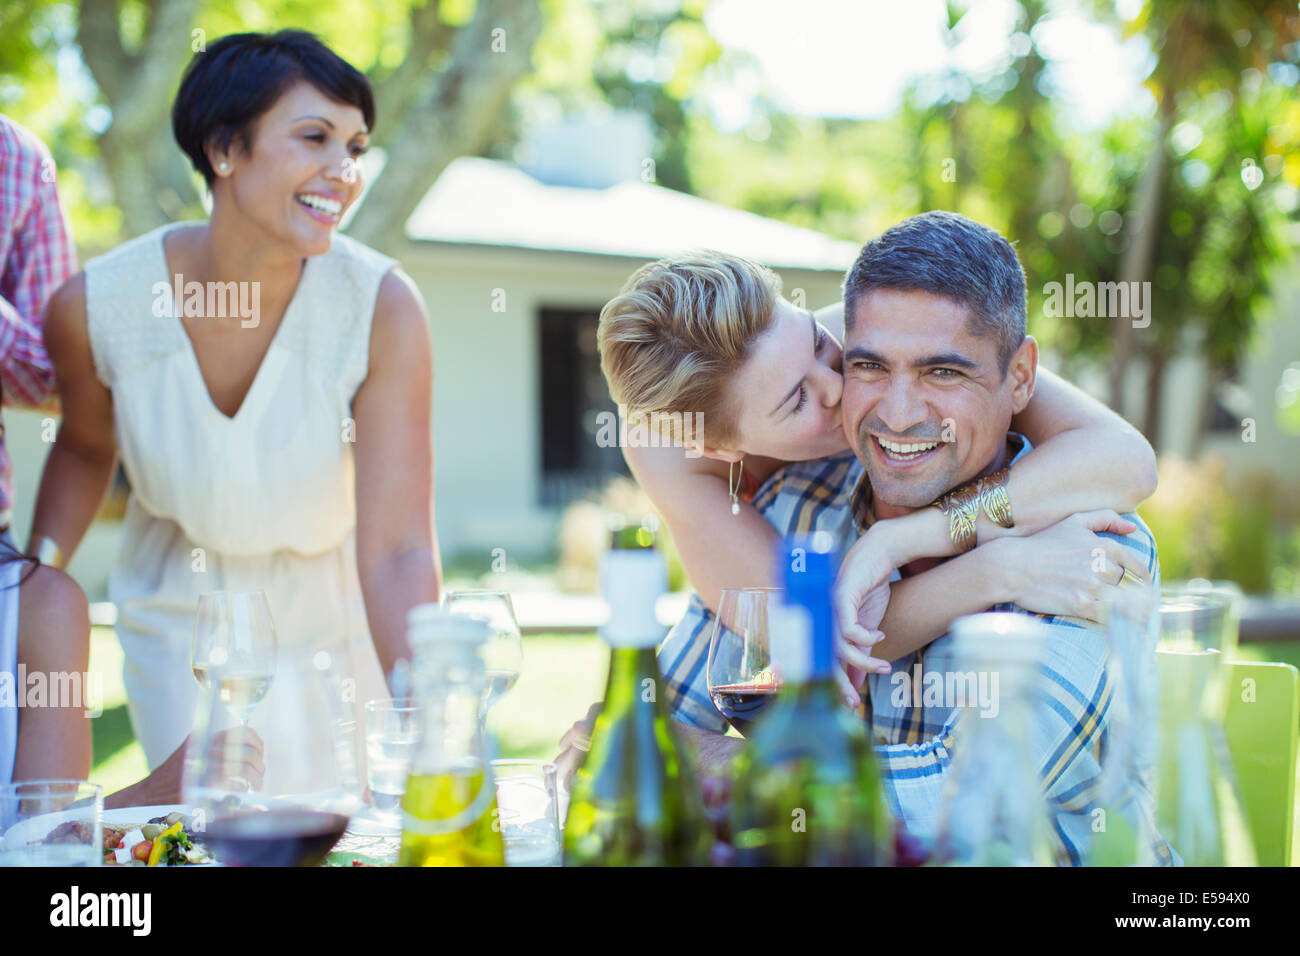 Couple kissing at table outdoors - Stock Image